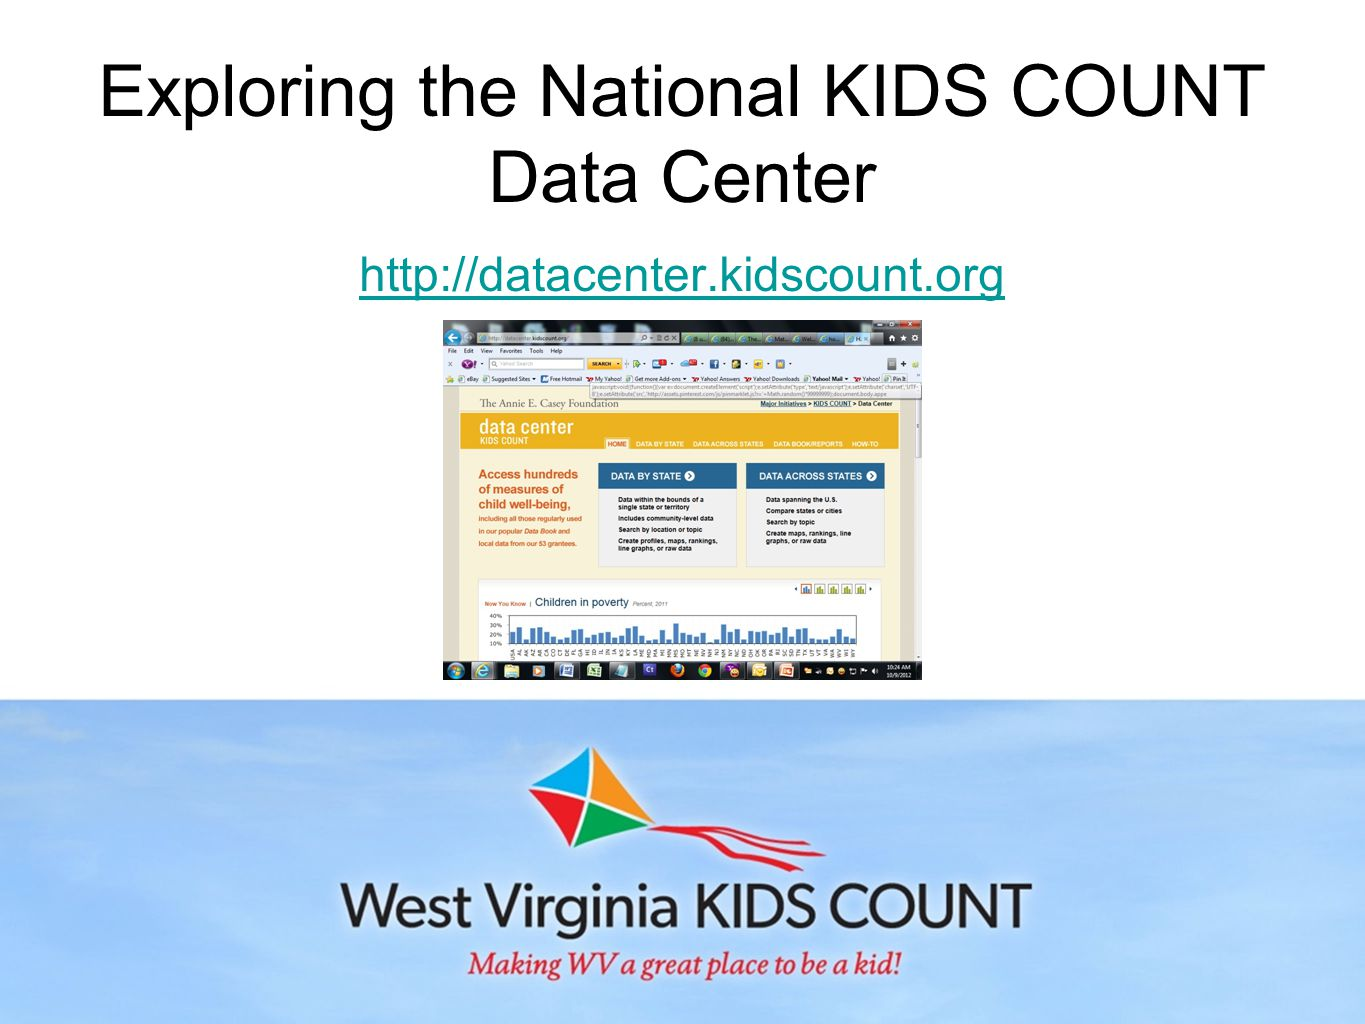 Exploring the National KIDS COUNT Data Center http://datacenter.kidscount.org